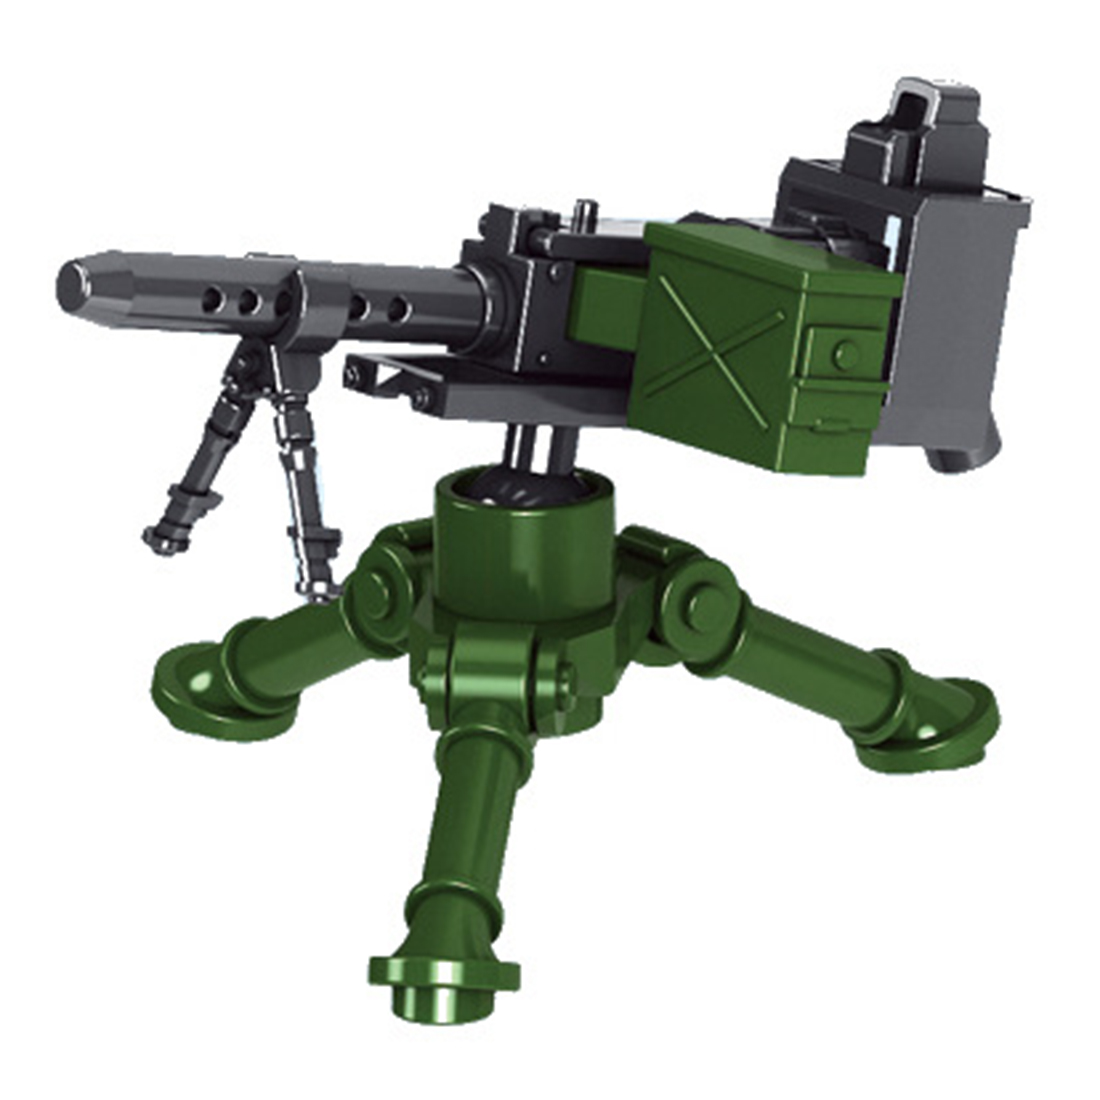 4pcs World War II German Army Military Small Particles Building Blocks Weapons Parts Puzzle Toys For Kid Birthday Gift